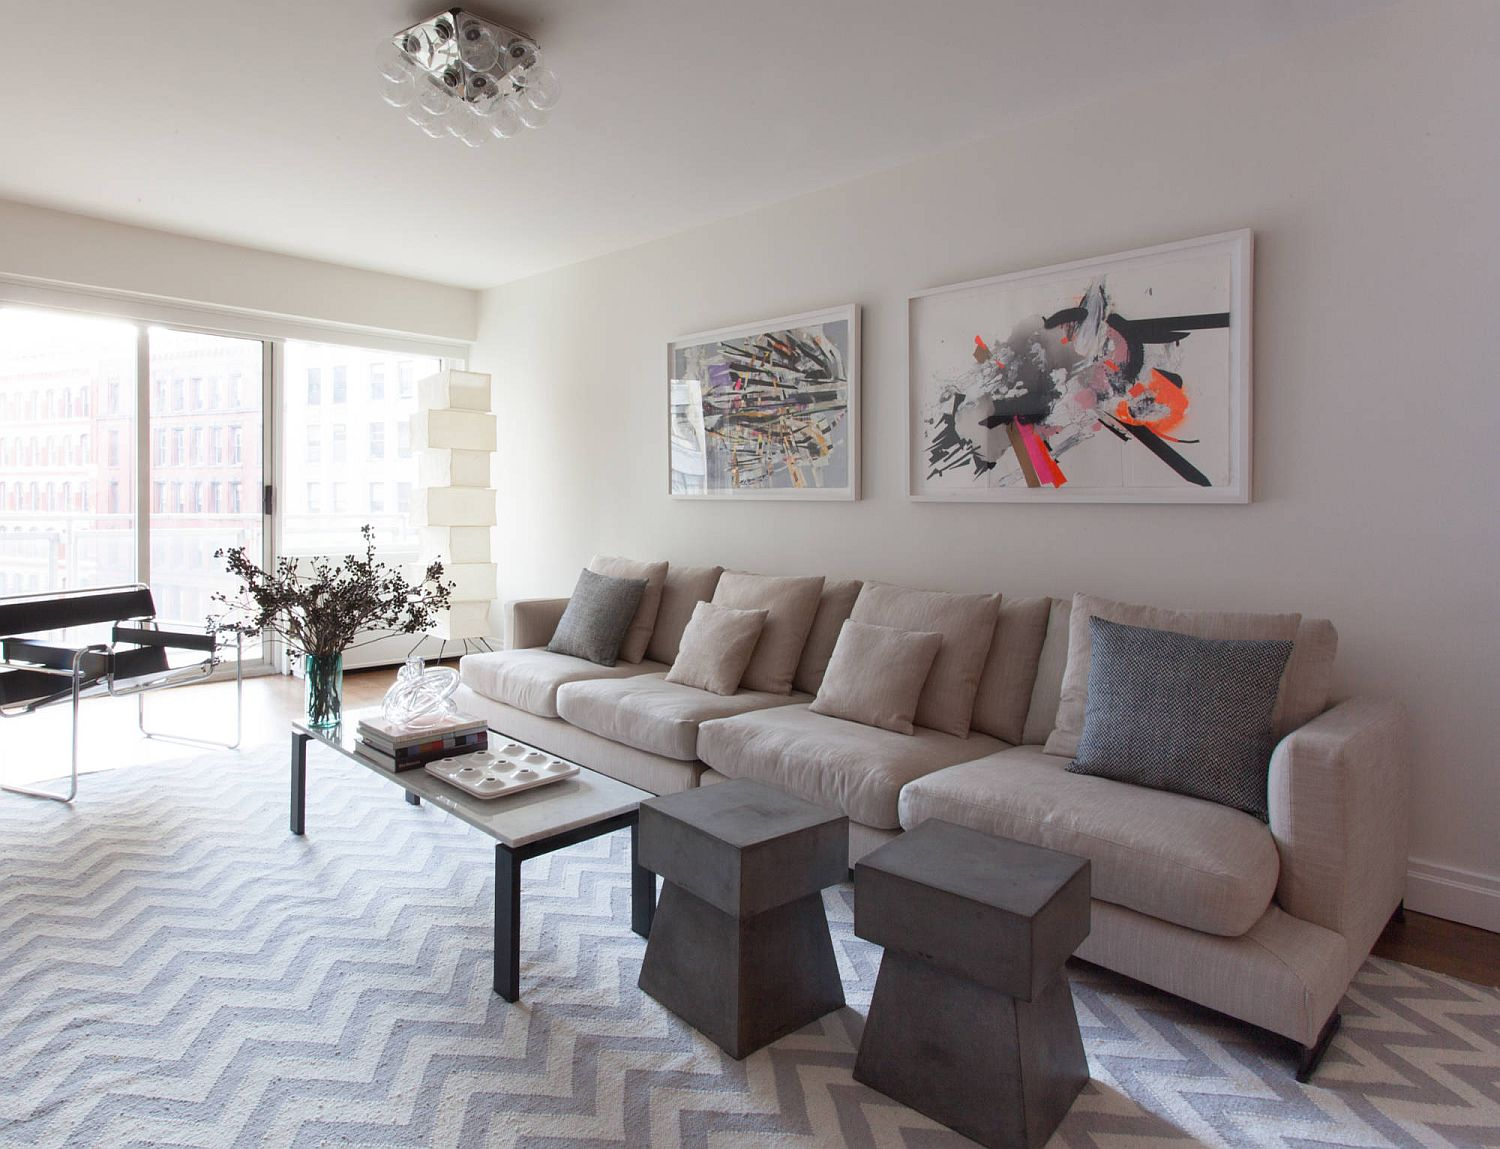 Modern-minimal-living-room-in-white-with-chevron-pattern-flooring-and-wall-art-with-a-dash-of-color